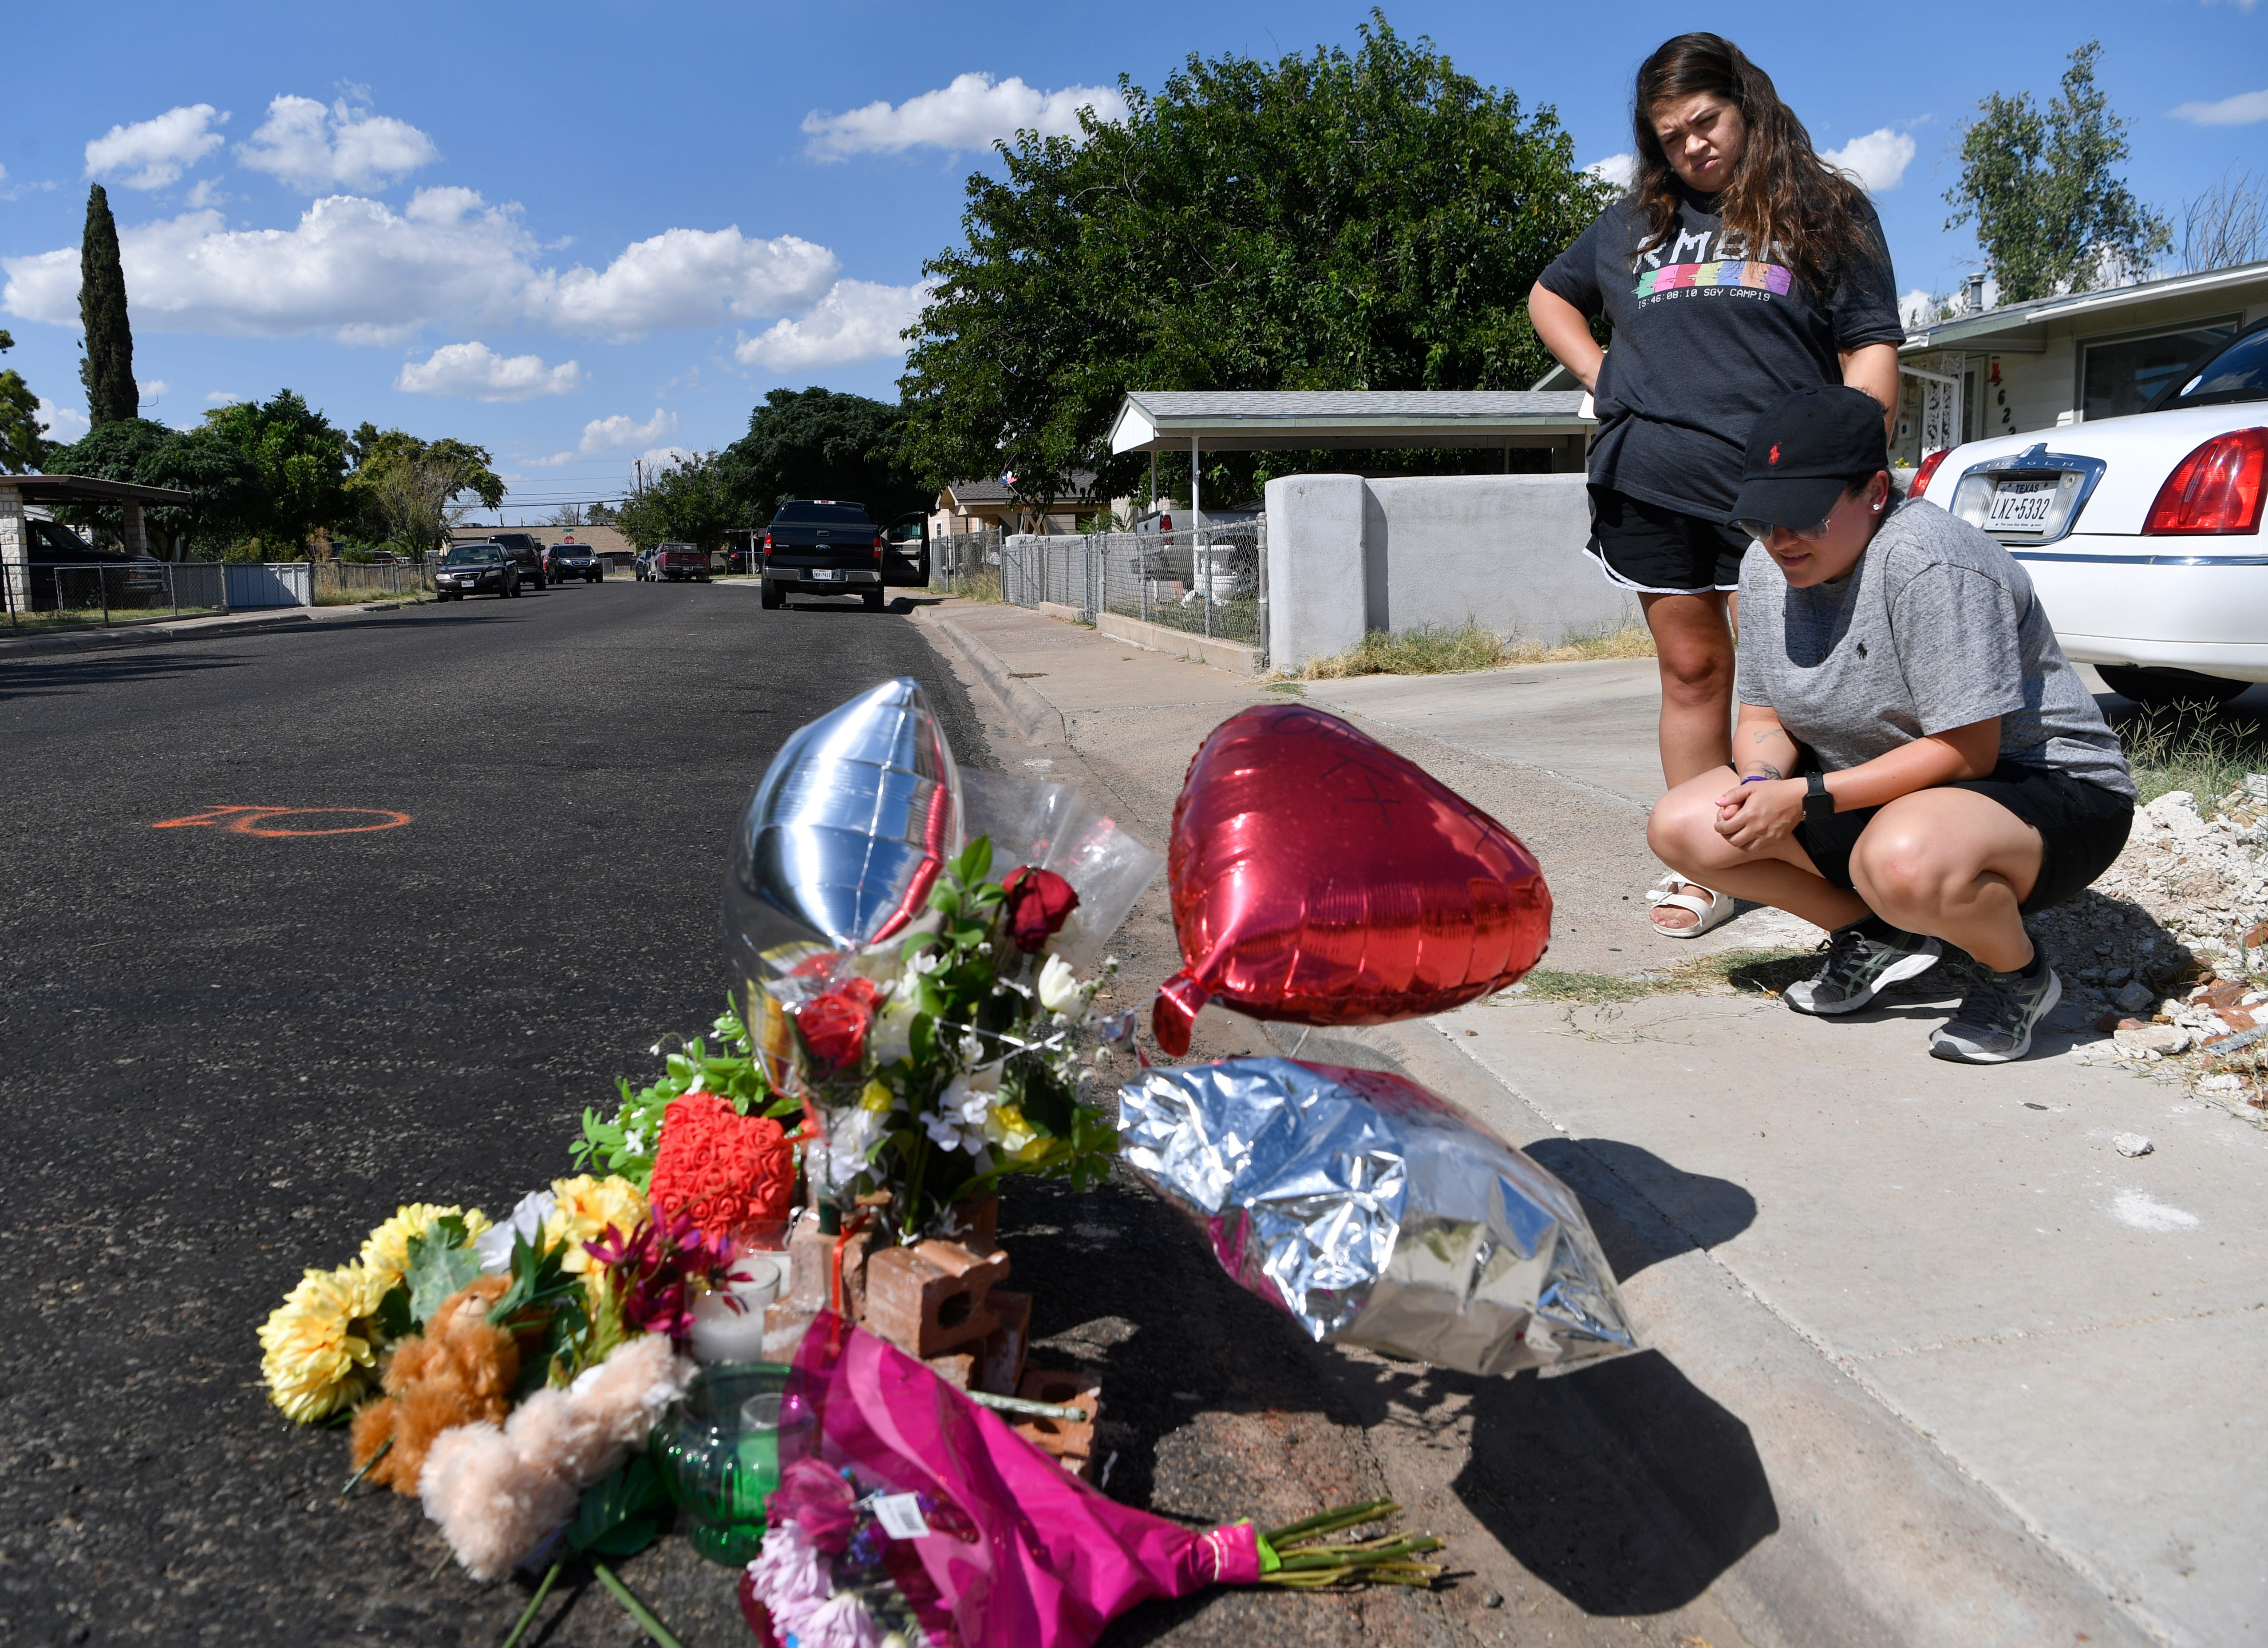 Ashley Salazar, right, and Alyssa Baeza, both of Midland, Texas, pray over a memorial to slain postal worker Mary Granados in Odessa on Sept. 2, 2019. The letter carrier was one of seven killed by Seth Aaron Ator, 36, who went on a shooting spree and struck nearly two dozen people with gunfire.